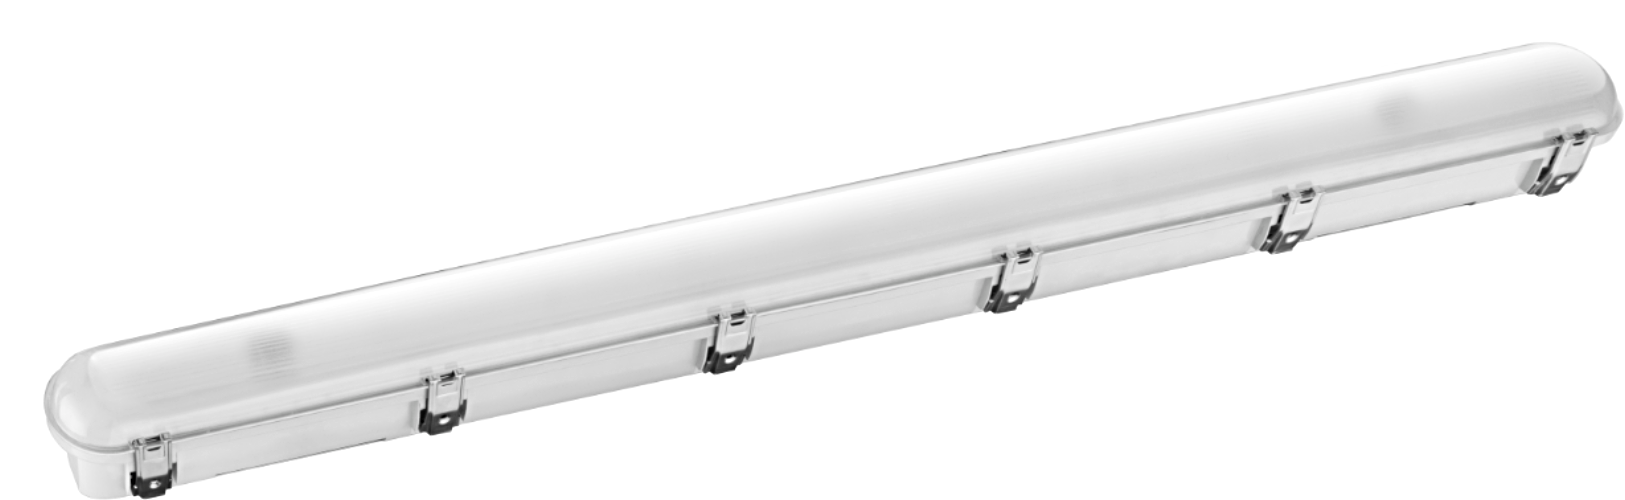 NEW-TRI-PROOF - 5 FT LED FITTING from the Batteryworldshop.com